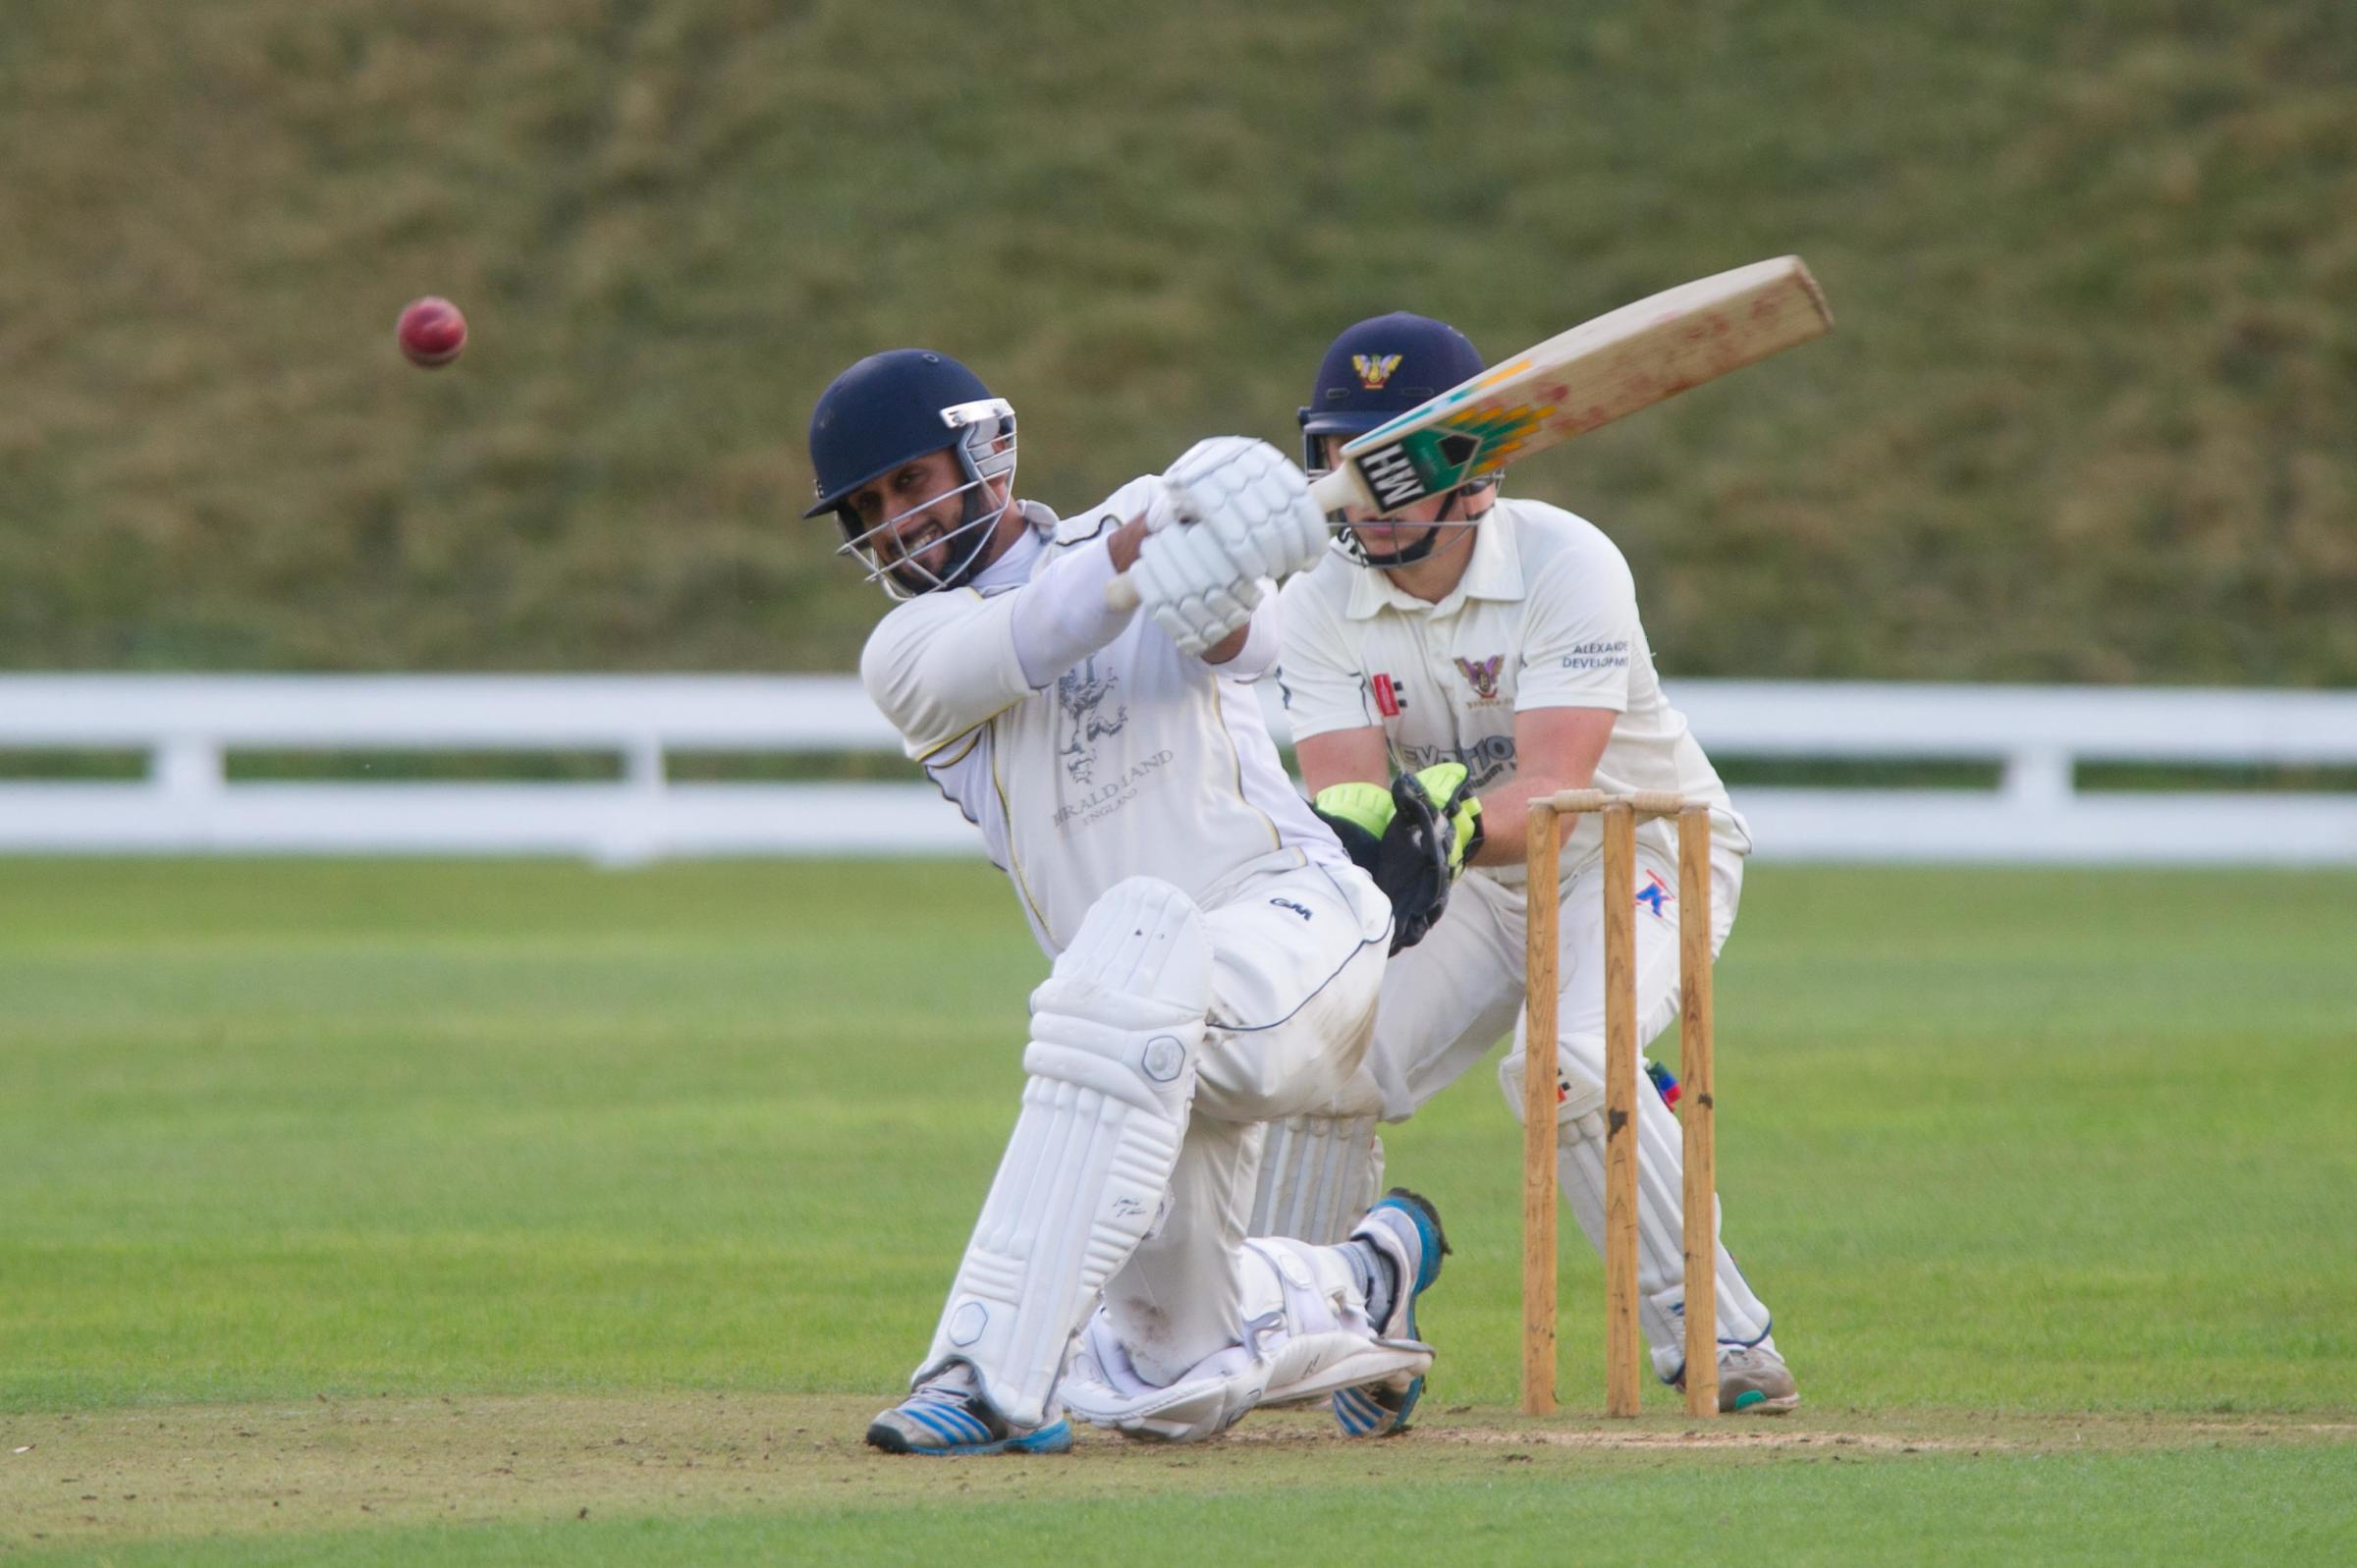 Imran Hassans superb century wasnt enough for Newport